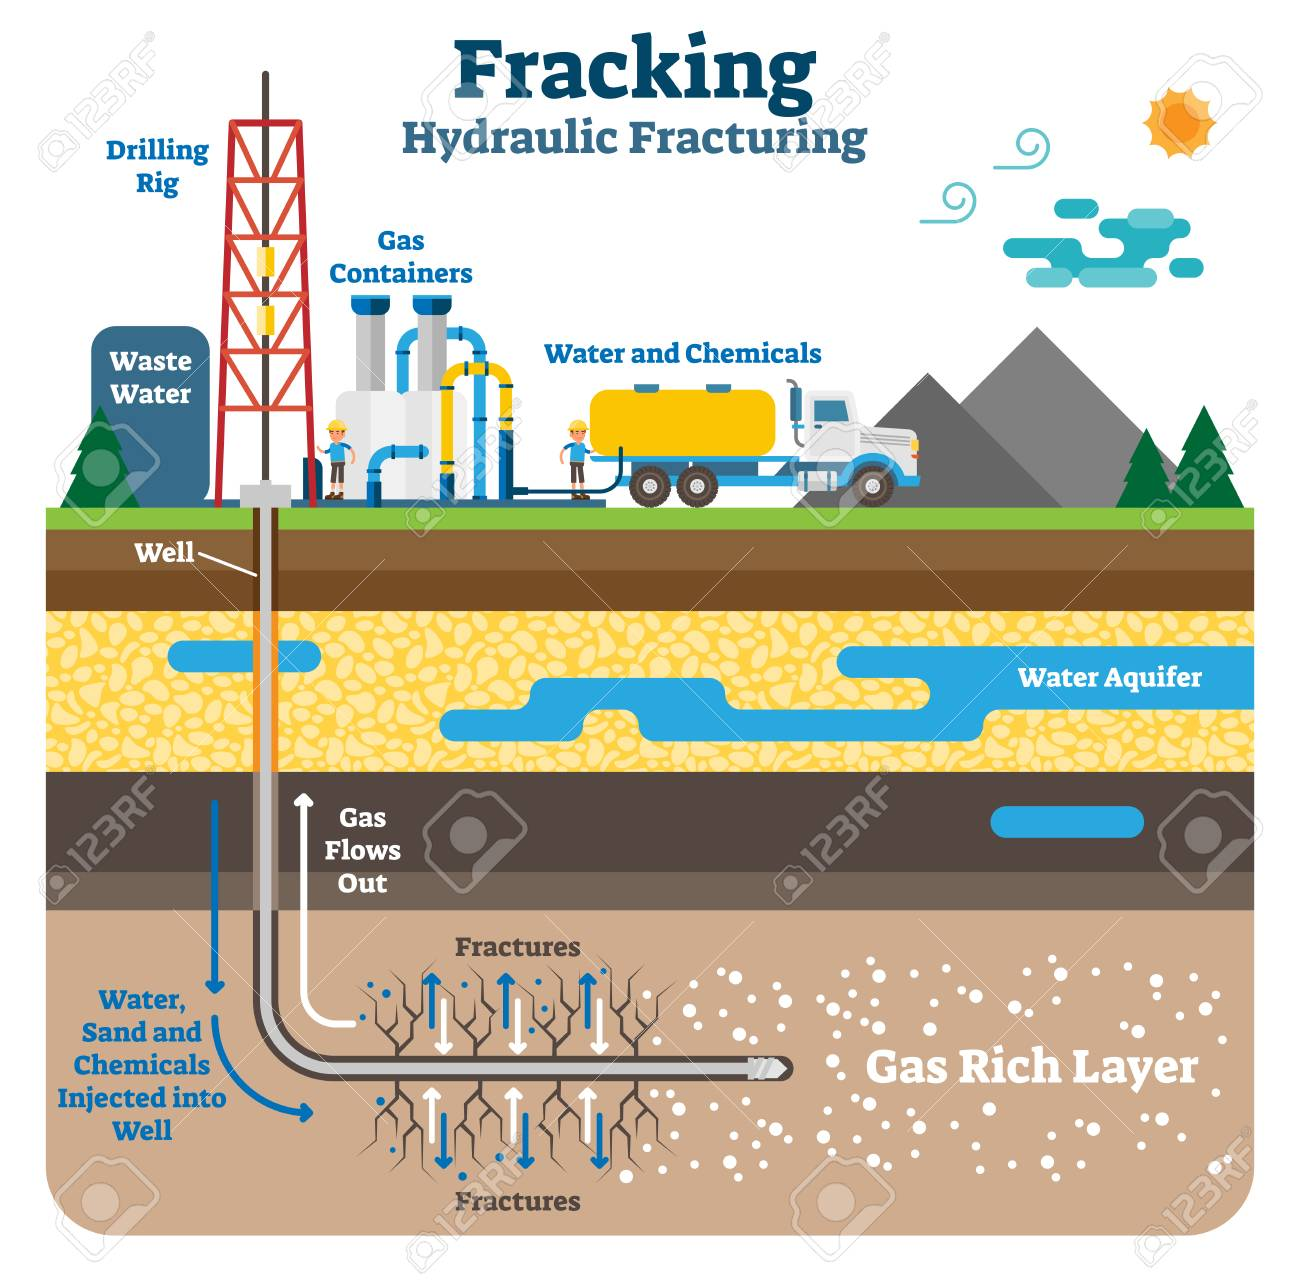 Hydraulic fracturing flat schematic vector illustration. Fracking process with machinery equipment, drilling rig and gas rich ground layers. - 99603030